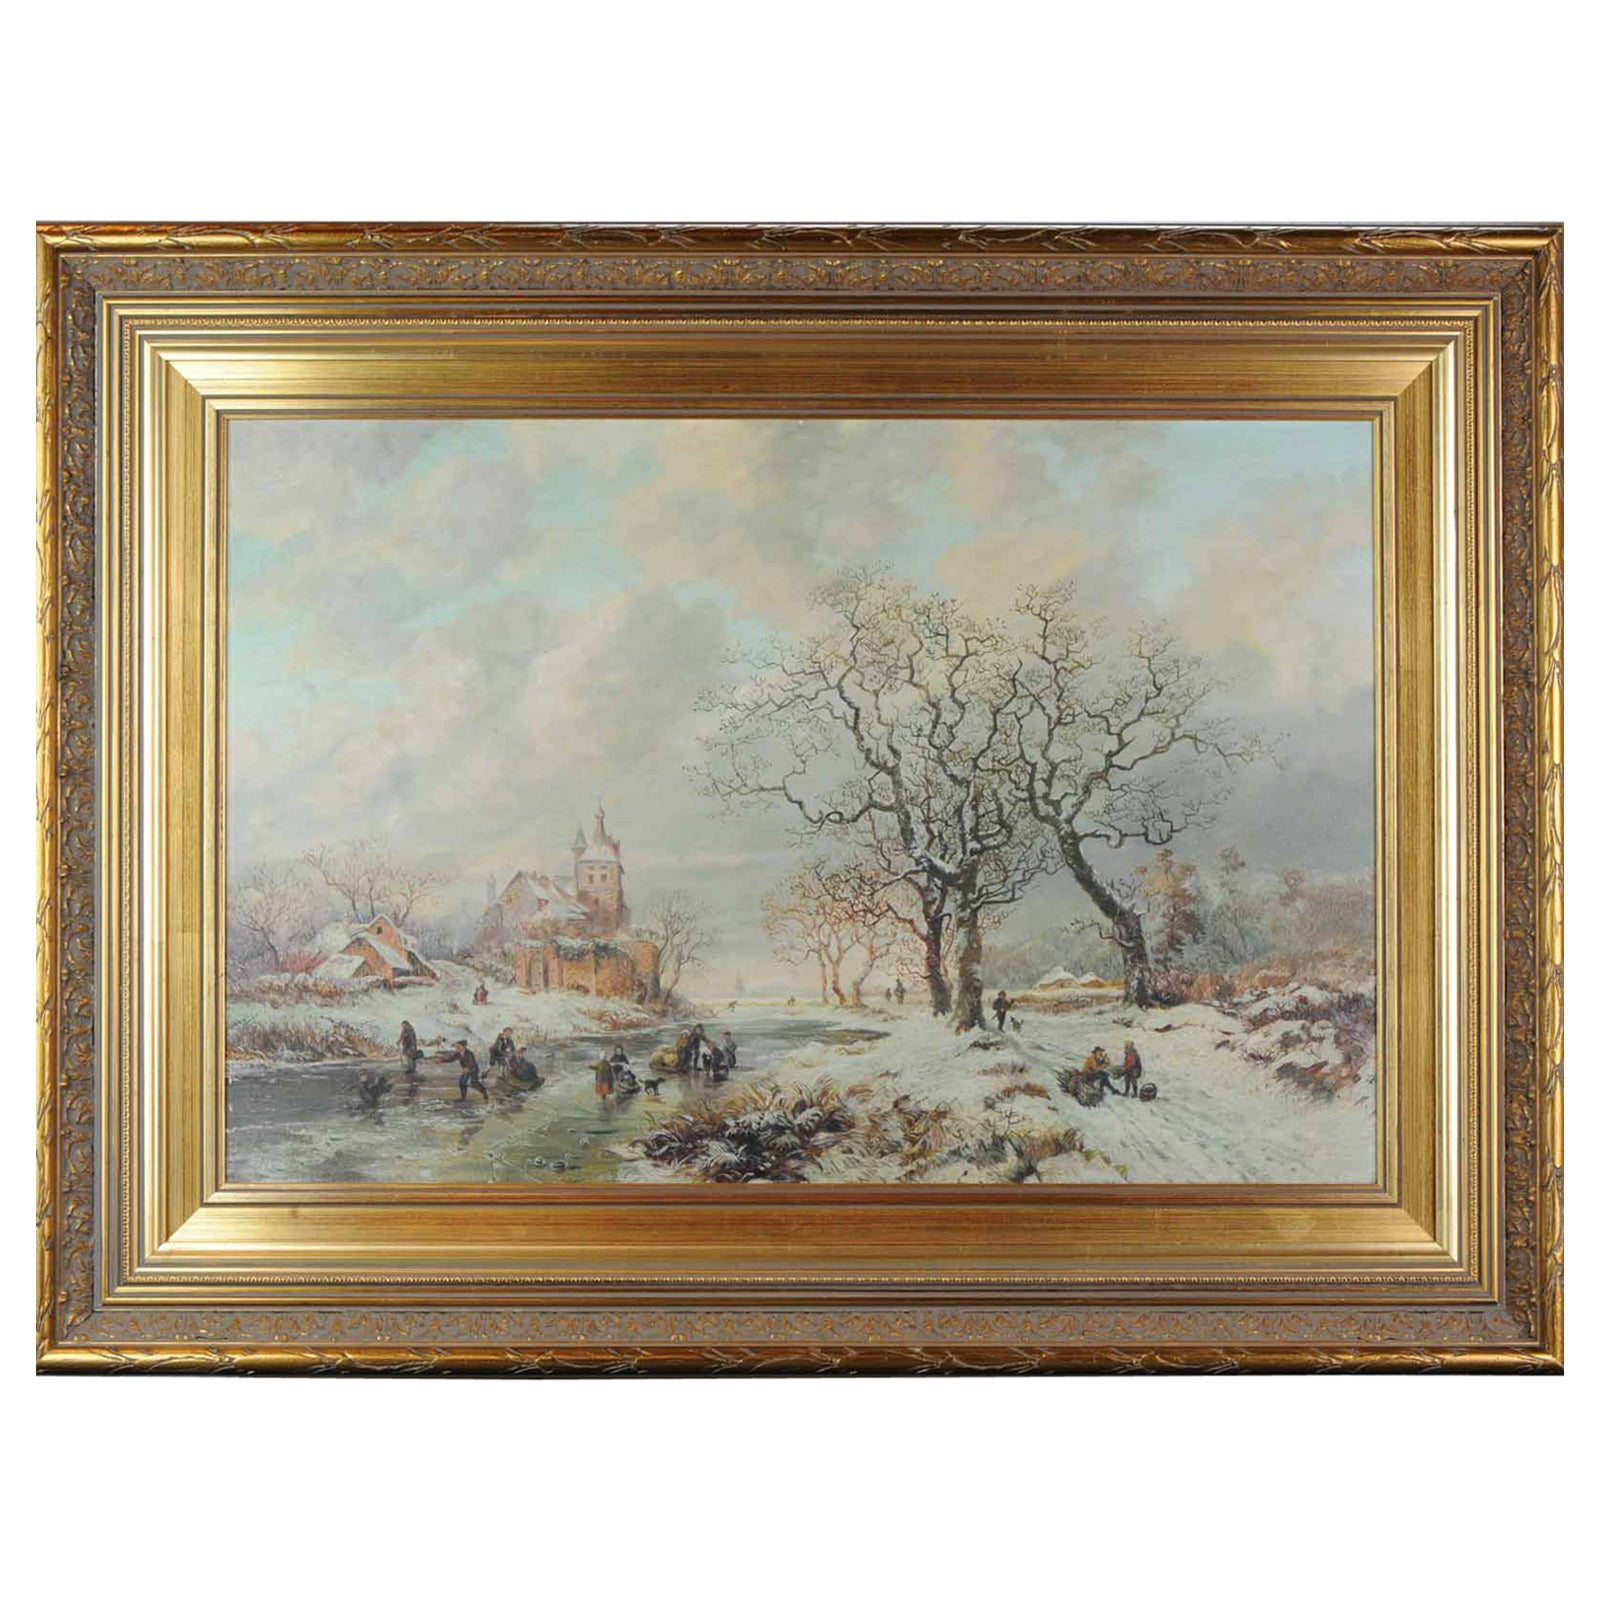 Lovely Painting Early 20th Century Dutch Winter Landscape in 17th Century Style